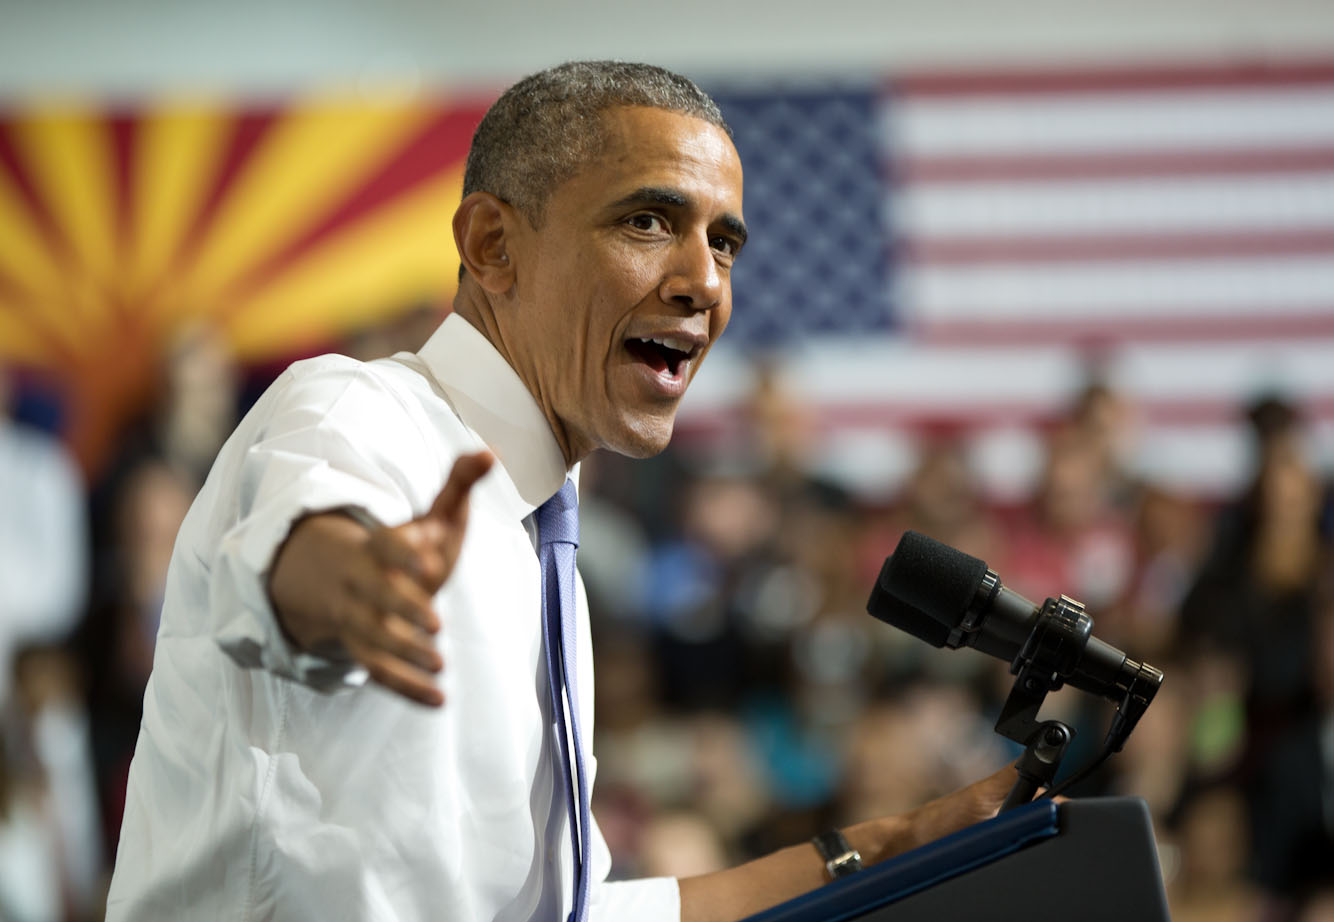 President Obama delivers remarks on housing at Central High School in Phoenix